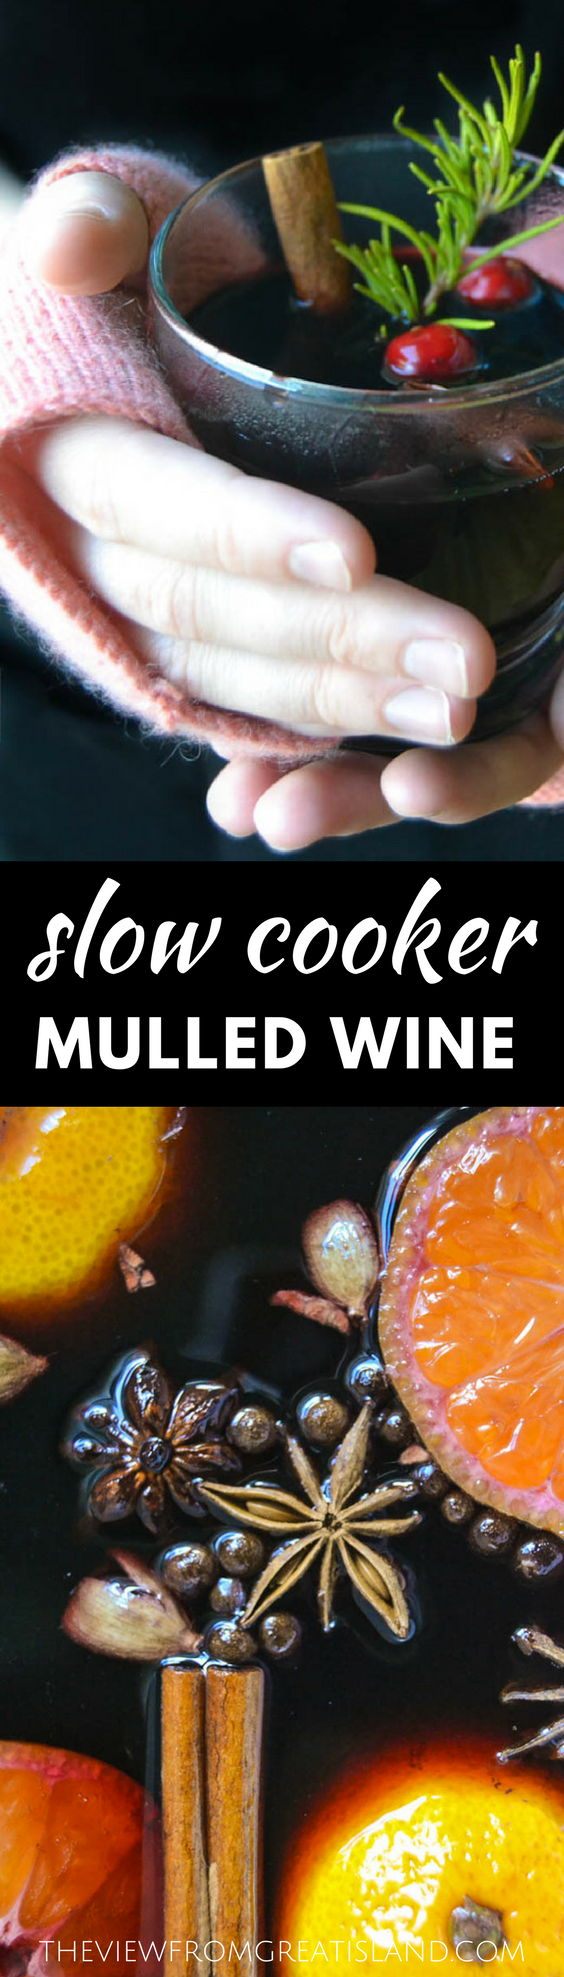 Slow Cooker Mulled Wine ~ this warming winter cocktail scents the whole house, and guests can help themselves!  Let's get this party started!  #wine #mulledwine #crockpot #slowcooker #holidays #Christmas #thanksgiving #holidaydrinks #hotdrinks #falldrinks #winterdrinks #mulledwinerecipe #bestmulledwine